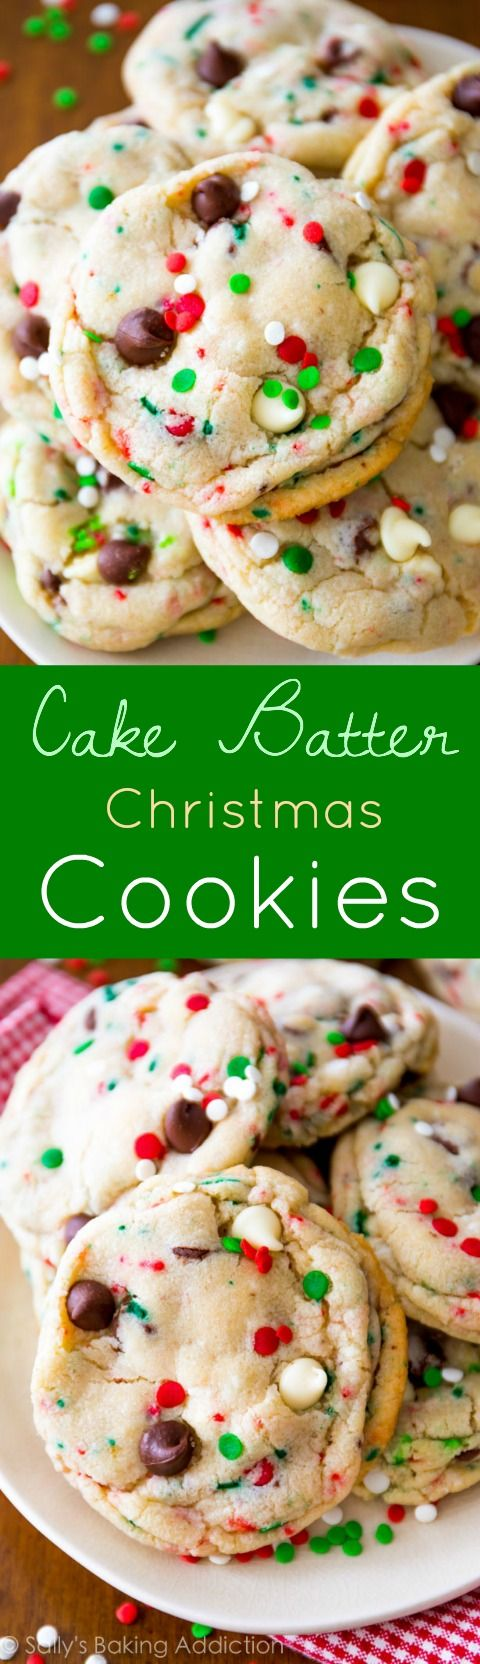 My famous cake batter chocolate chip cookies all dressed up for the holidays! Use green and red sprinkles to make them festive Christmas cookies.